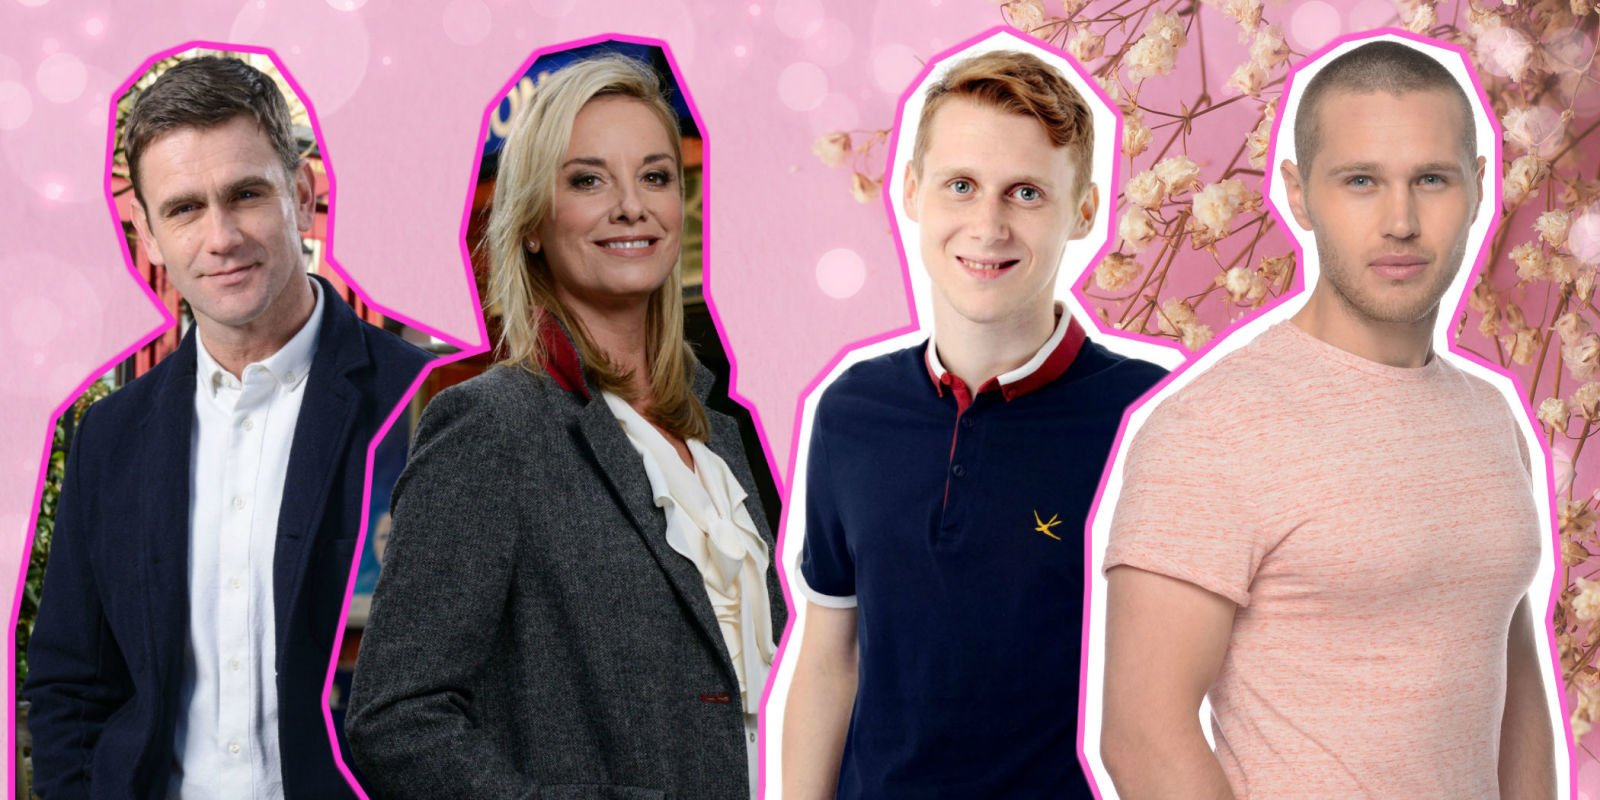 7 potential EastEnders couples we're already shipping, from Jack and Mel to Jay and Keanu